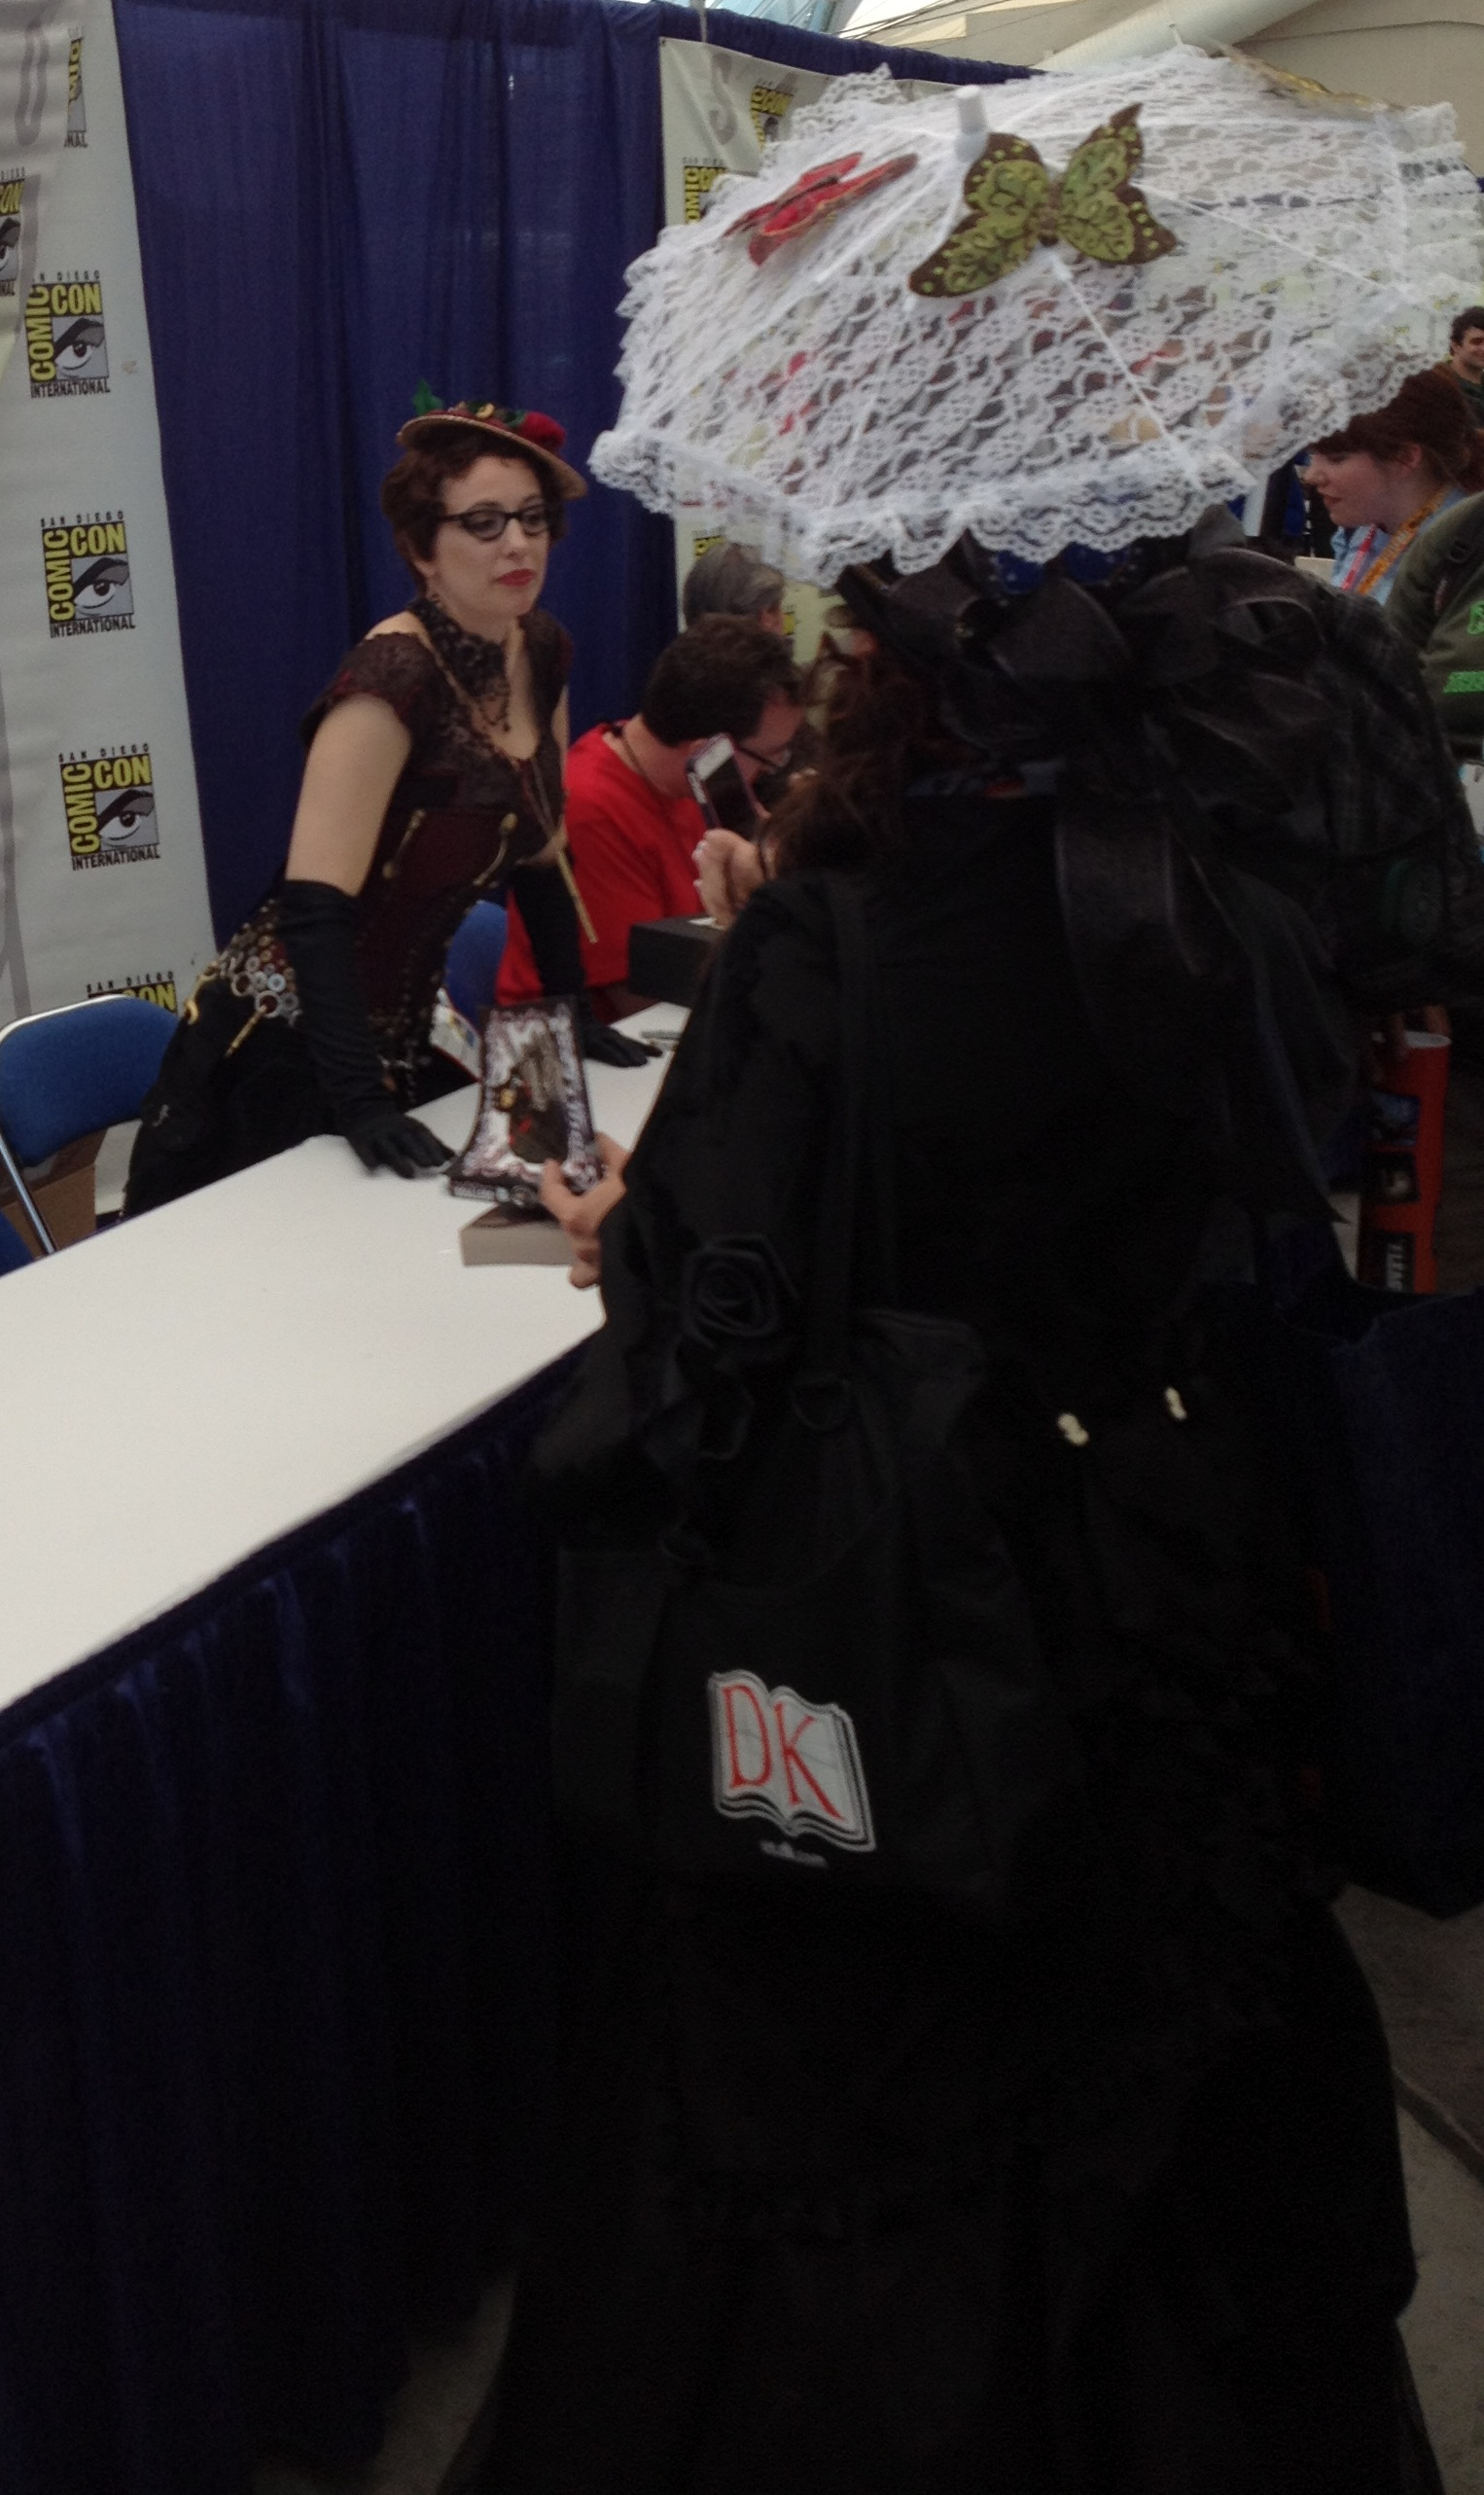 Spotted in the wilds of SDCC 2012